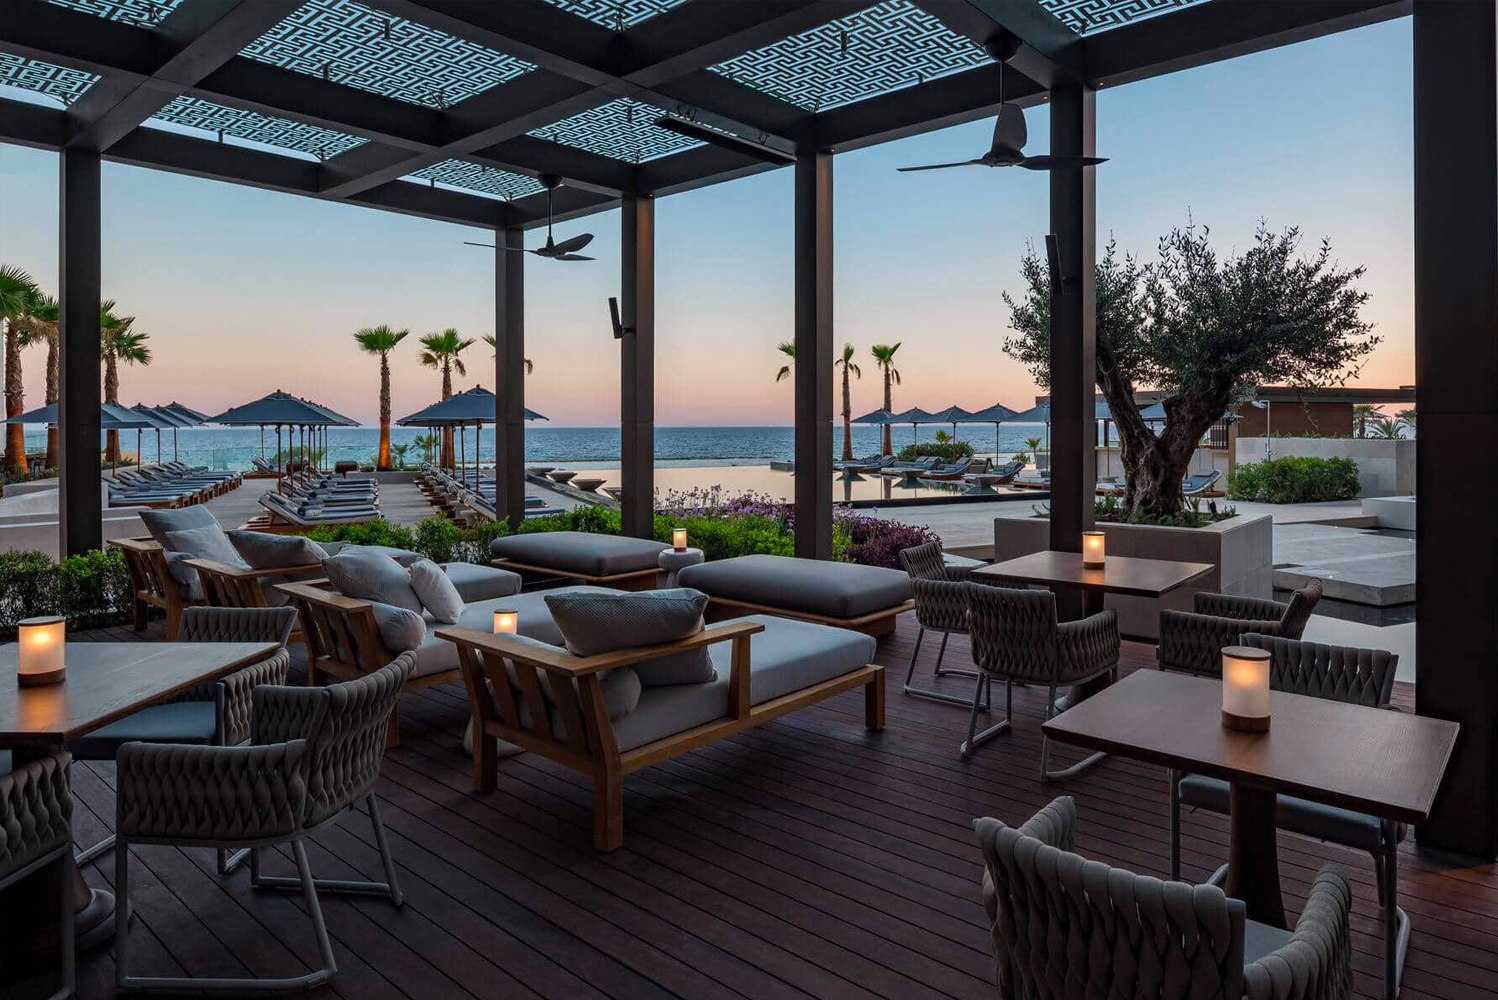 Designed by SB Architects, the property is located near the historic Greek settlement of Amathus.